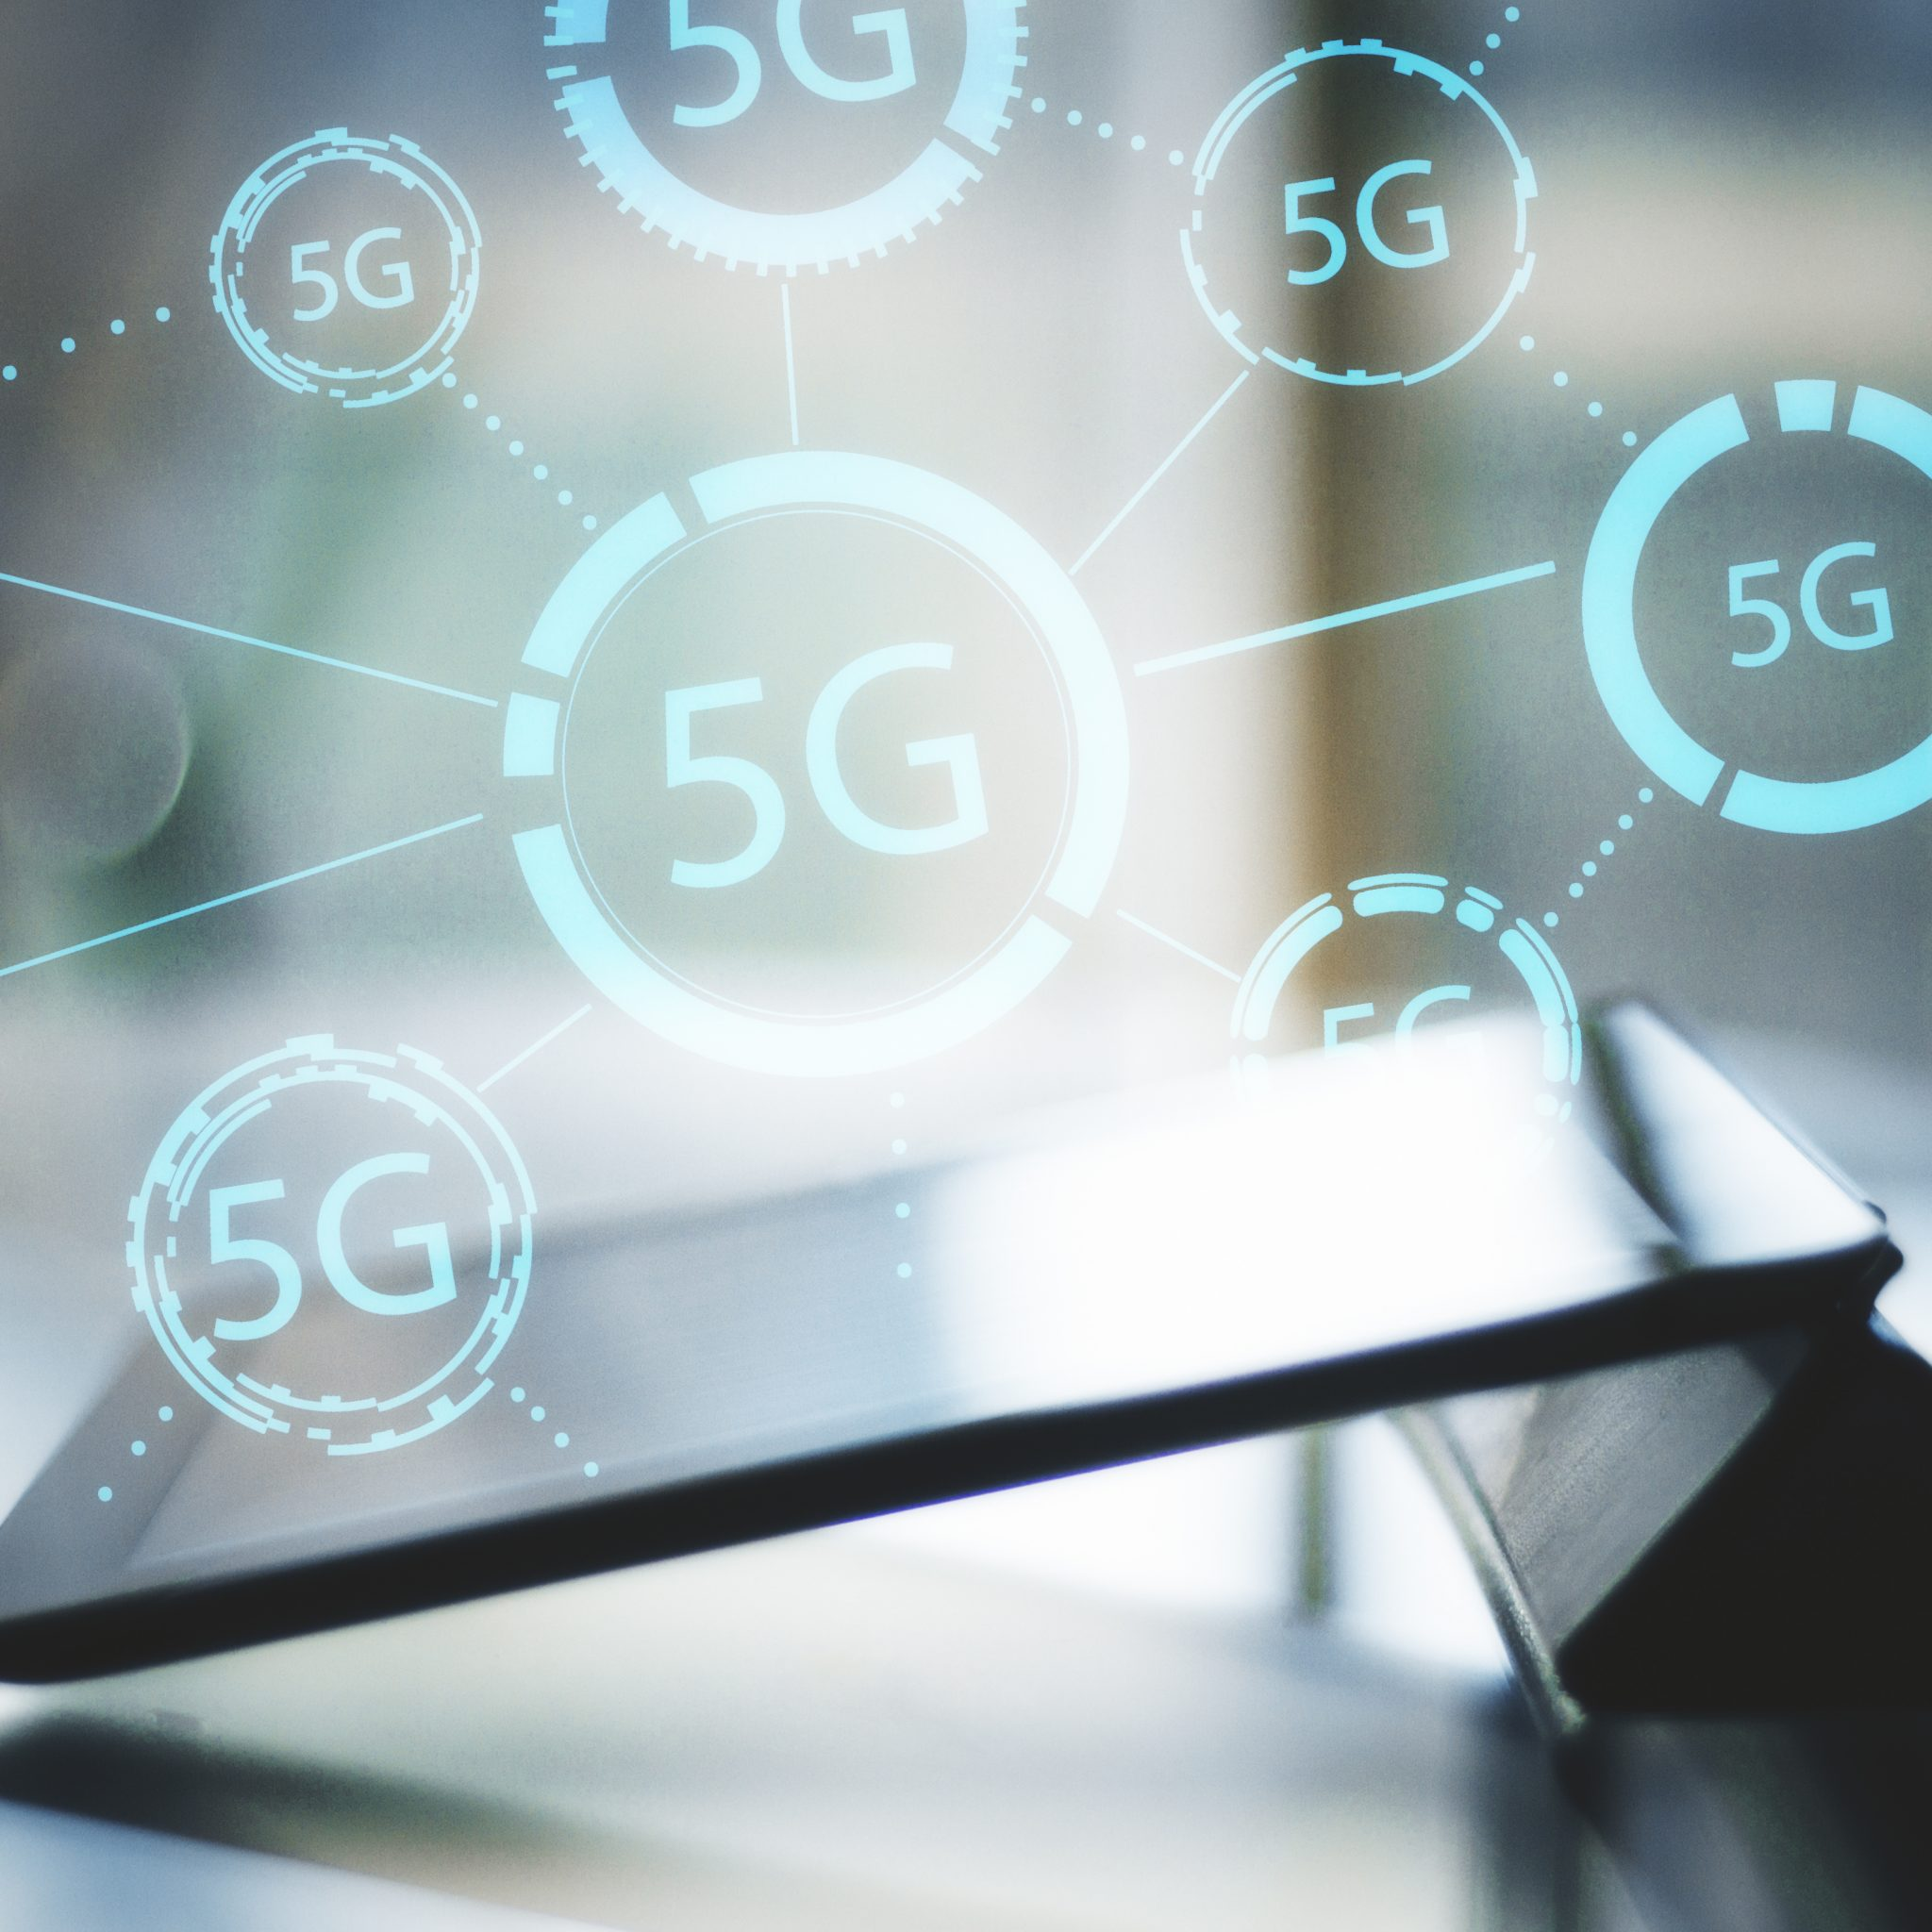 ZTE works with 40+ global operators for 5G cooperation and testing